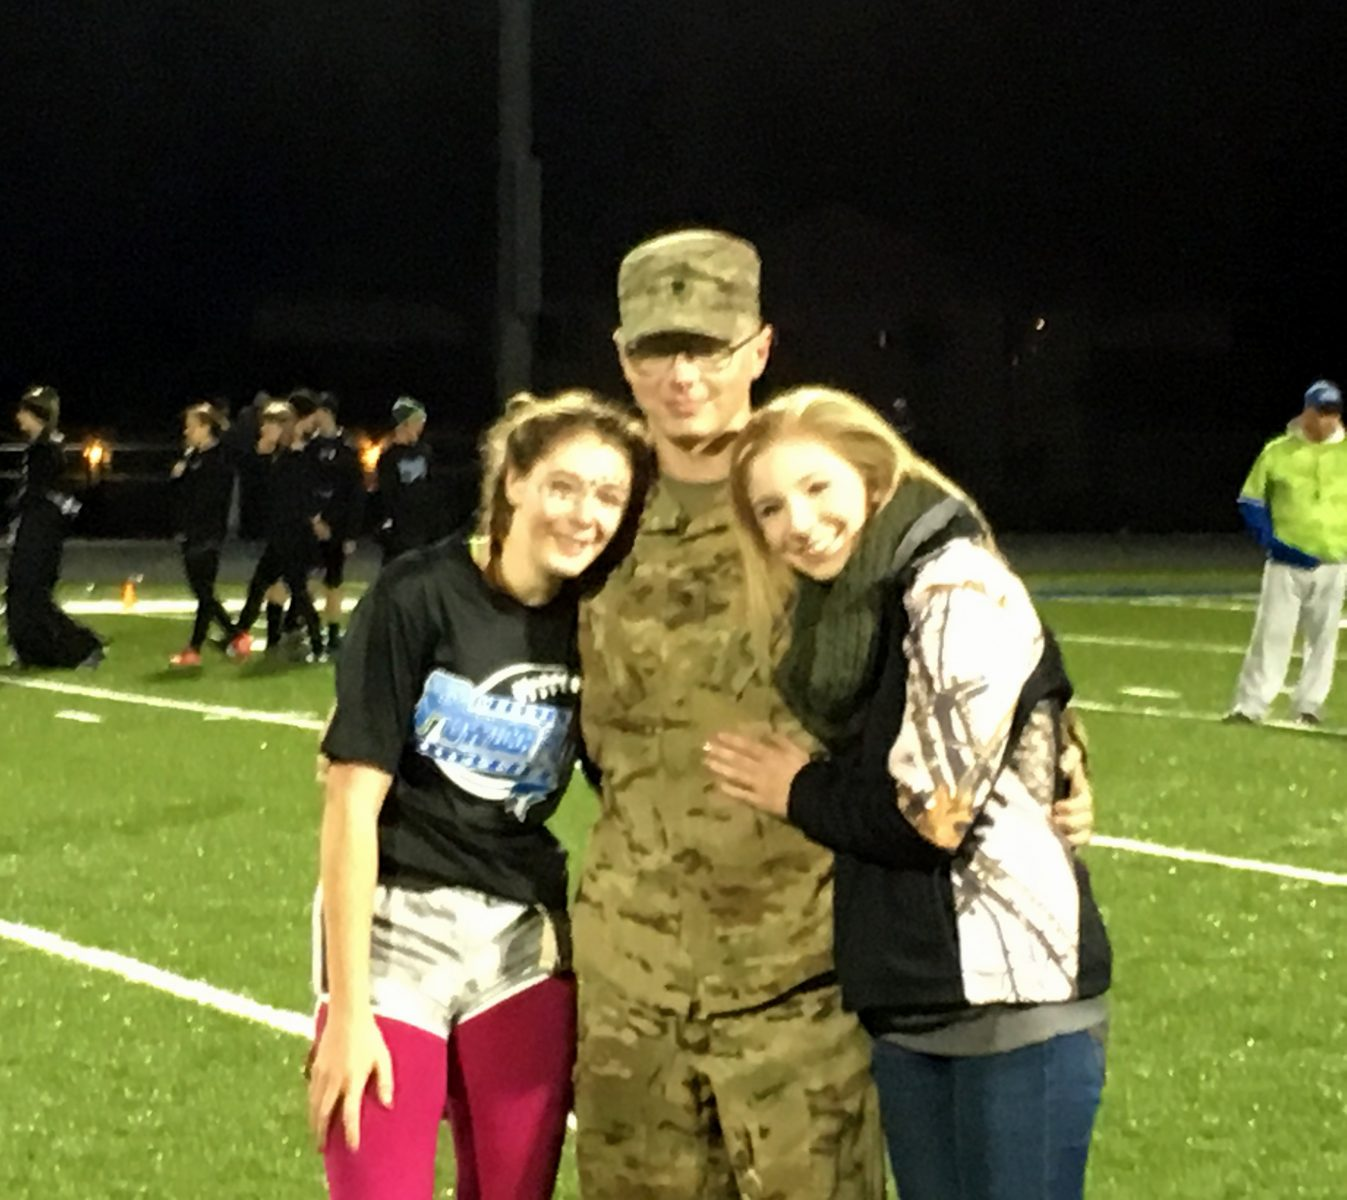 In what was probably one of the sweetest events to occur in PowderPuff history, Specialist Justin Berry, who just served a 10-month tour in Afghanistan, surprised Junior Ashlin Berry (his little sister) with an appearance at halftime. Pictured L to R: Ashlin, Justin, and Kaitlin. The Merrill Foto News gives a sincere thank you to Justin Berry for his service to our country.